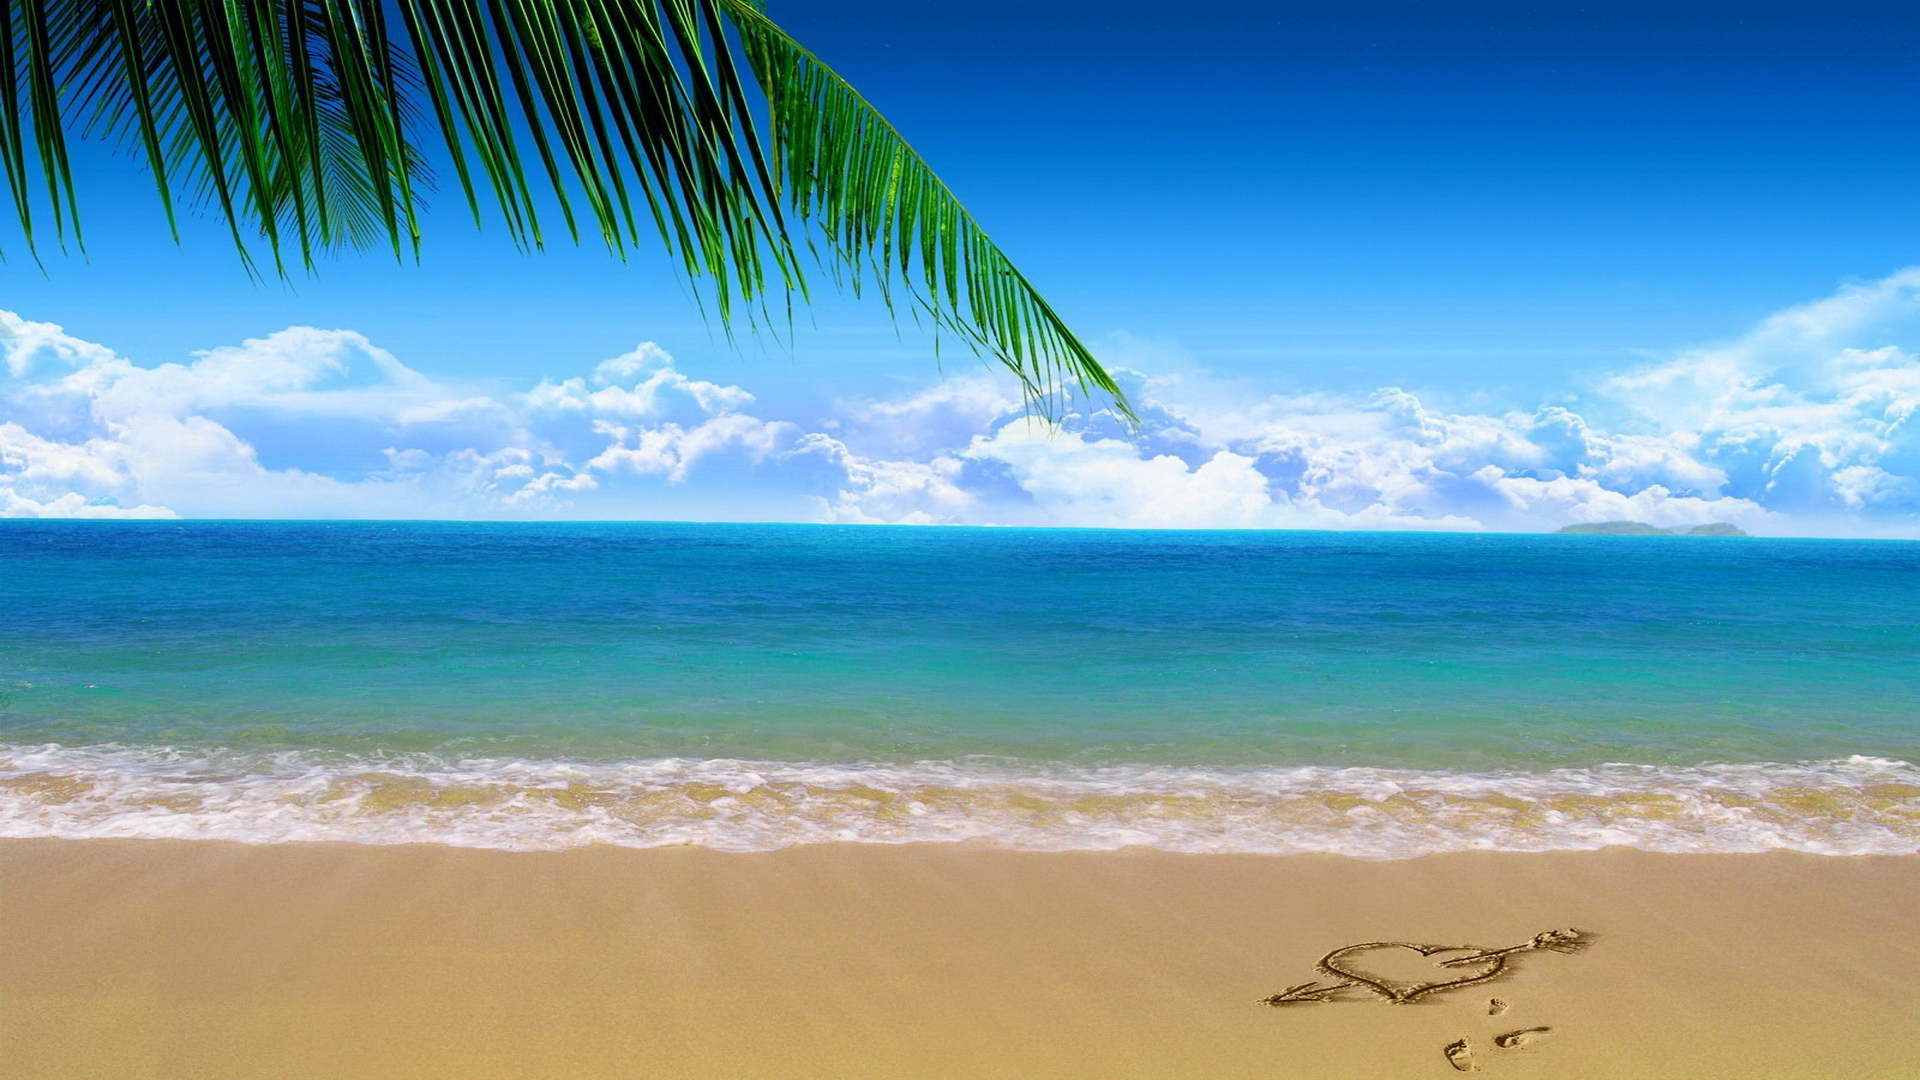 hight resolution of summer clip art beach clipart image